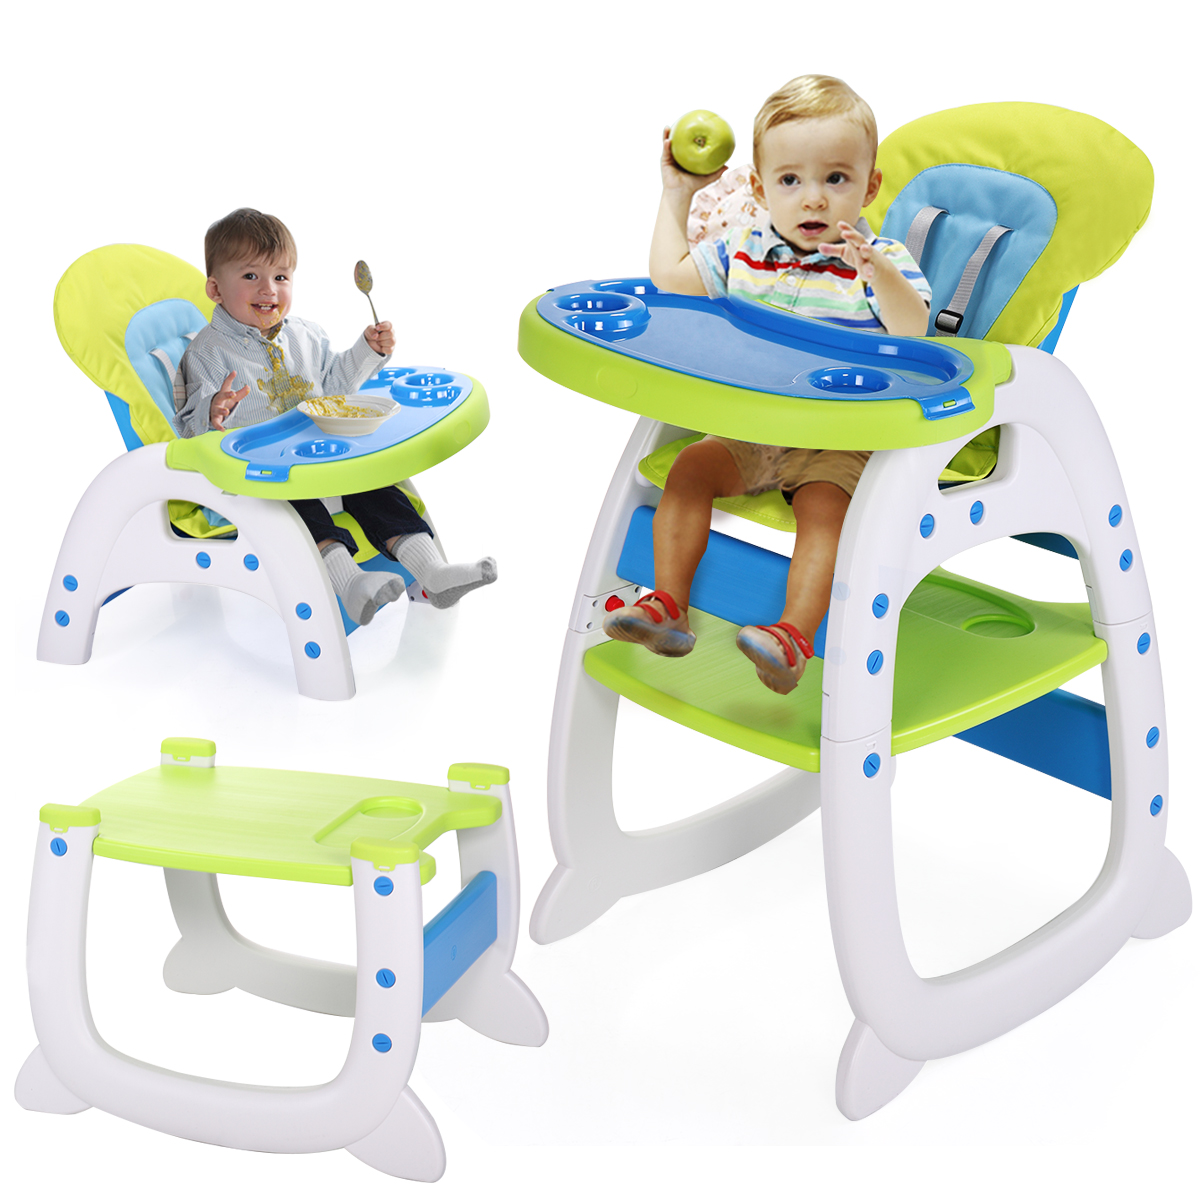 Lazymoon Blue-Green 3 in 1 Baby High Chair Convertible Play Table Seat Booster Infant Toddler Highchairs by Lazymoon